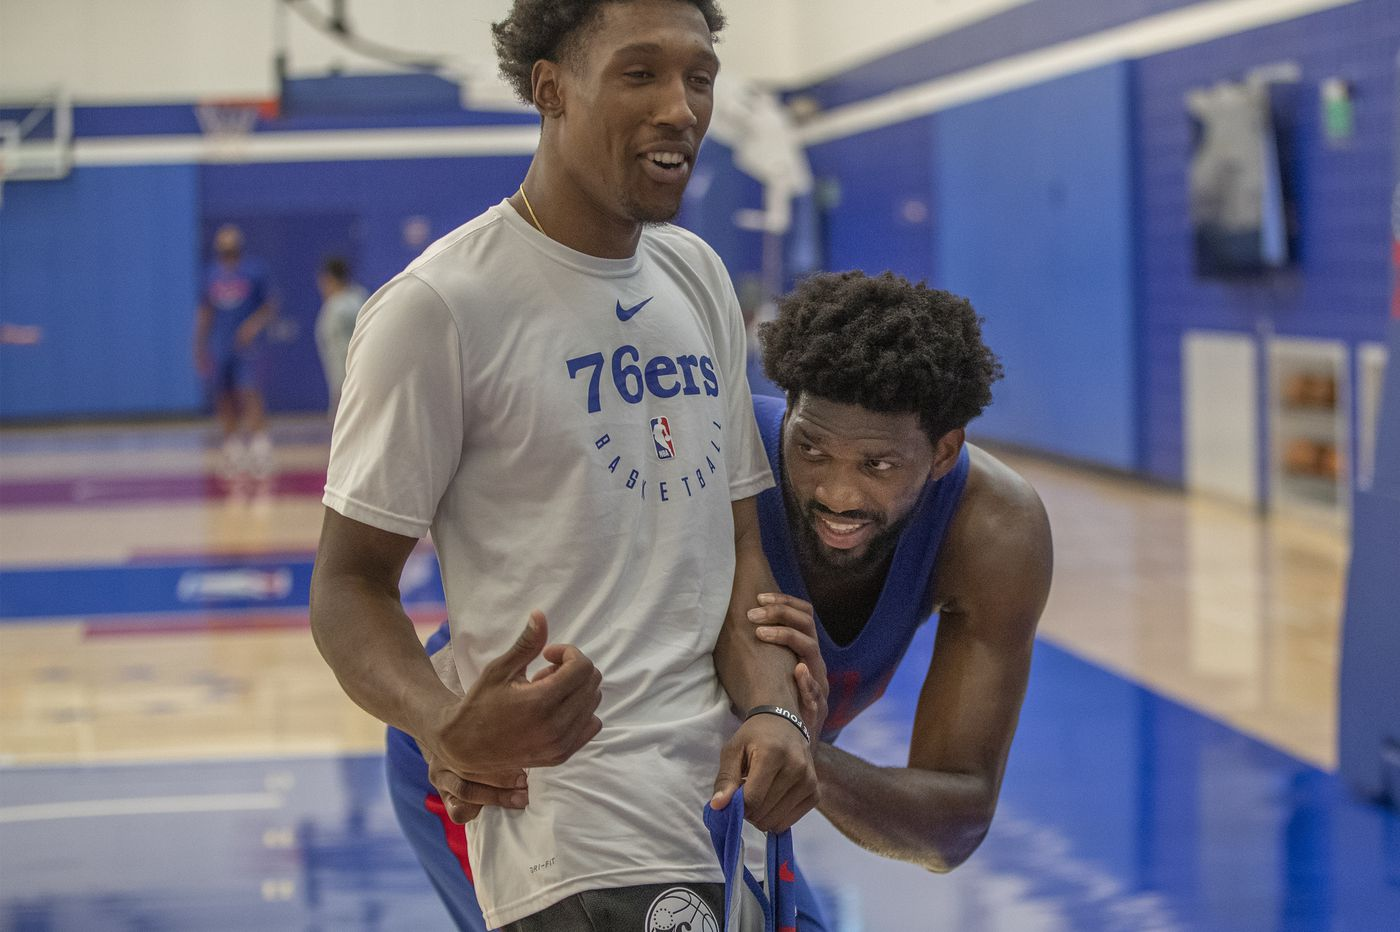 Sixers' Josh Richardson out, Joel Embiid doesn't practice but will play vs. Washington Wizards